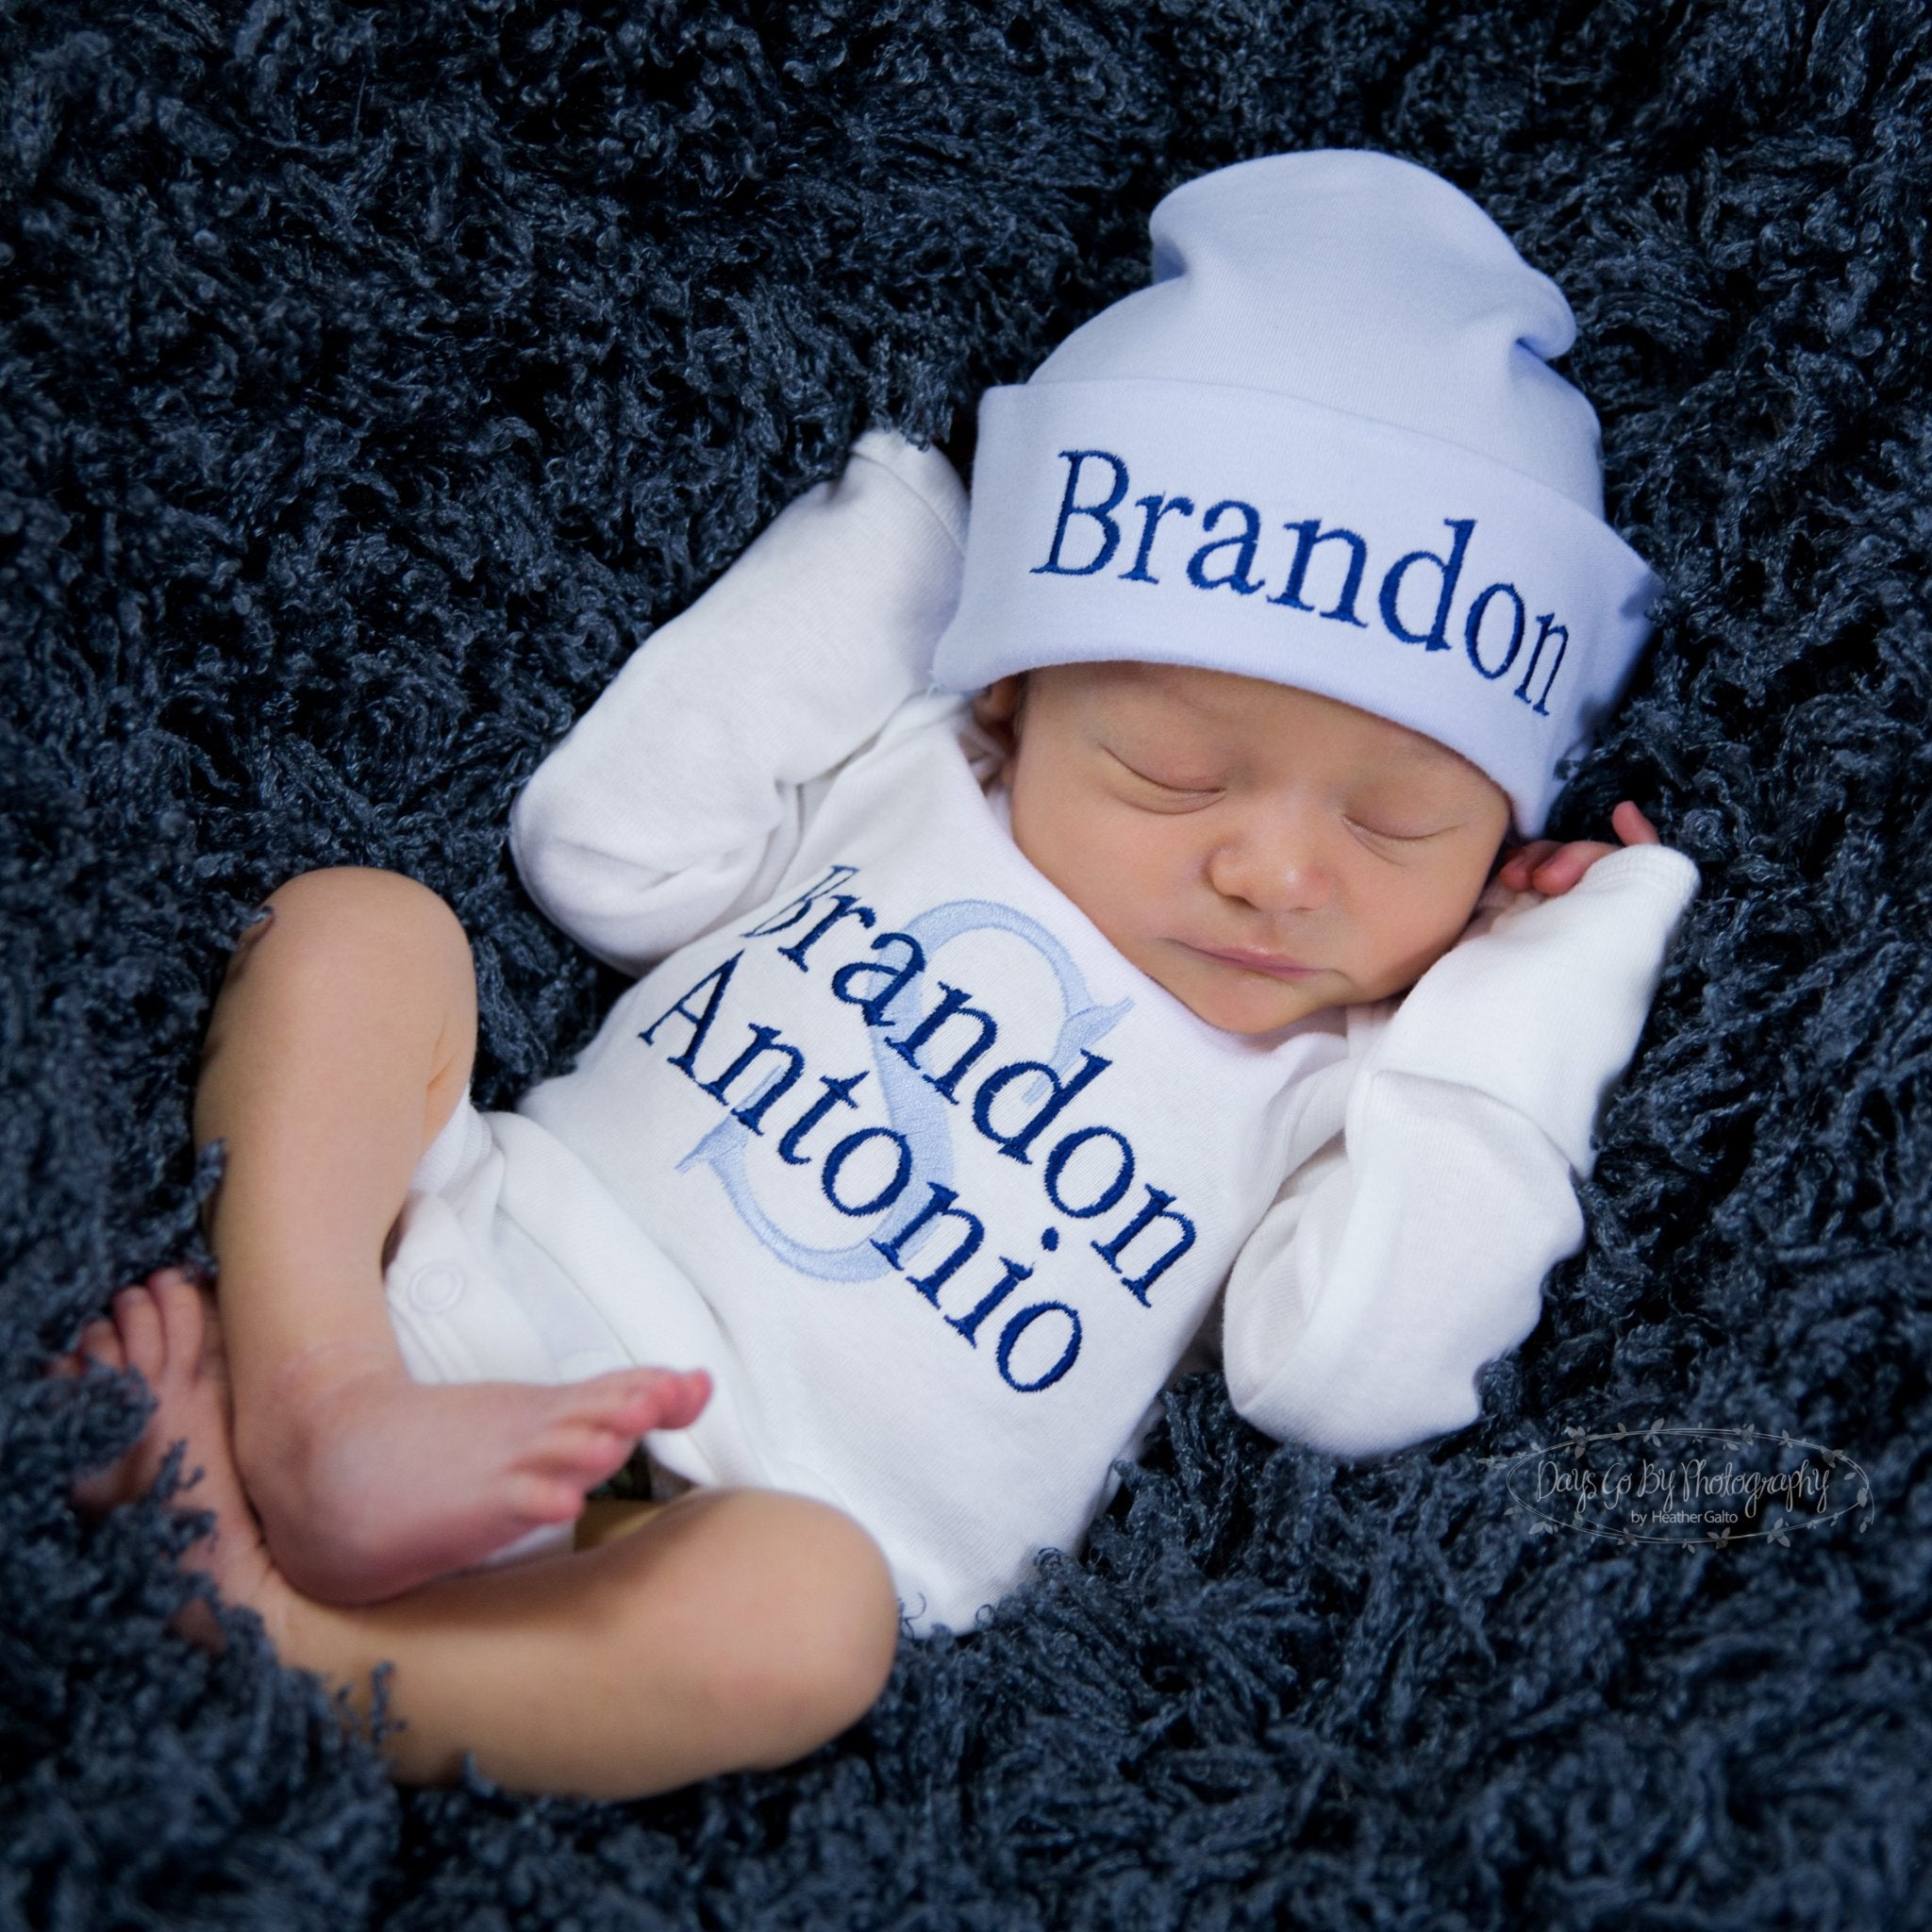 Personalized Baby Coming Home Outfit with Bodysuit d0378f6dd770